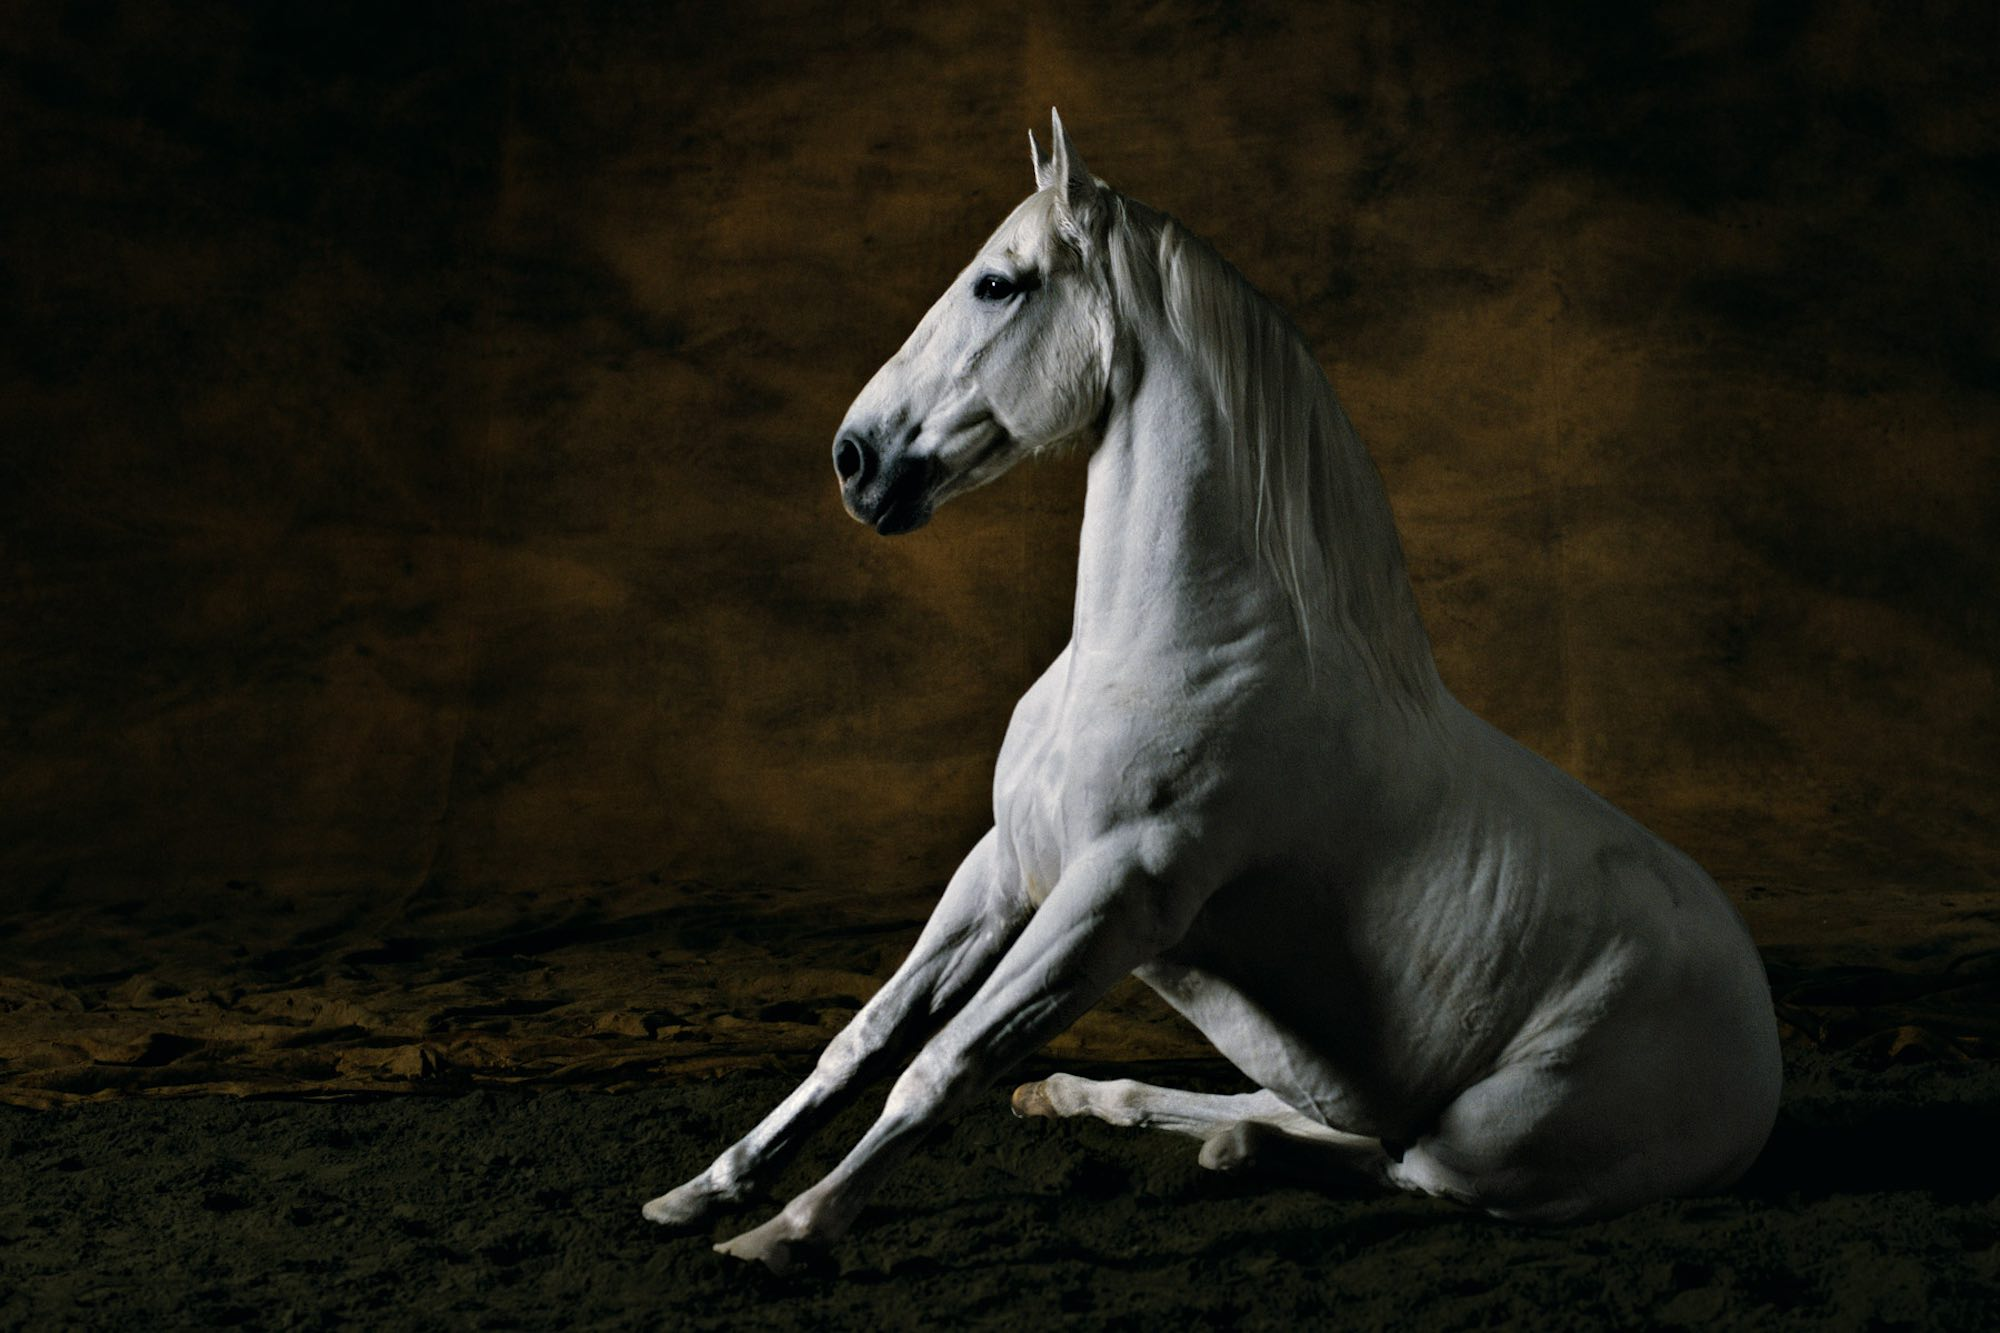 Pure-Bred Spanish stallion 3 - Yann Arthus-Bertrand